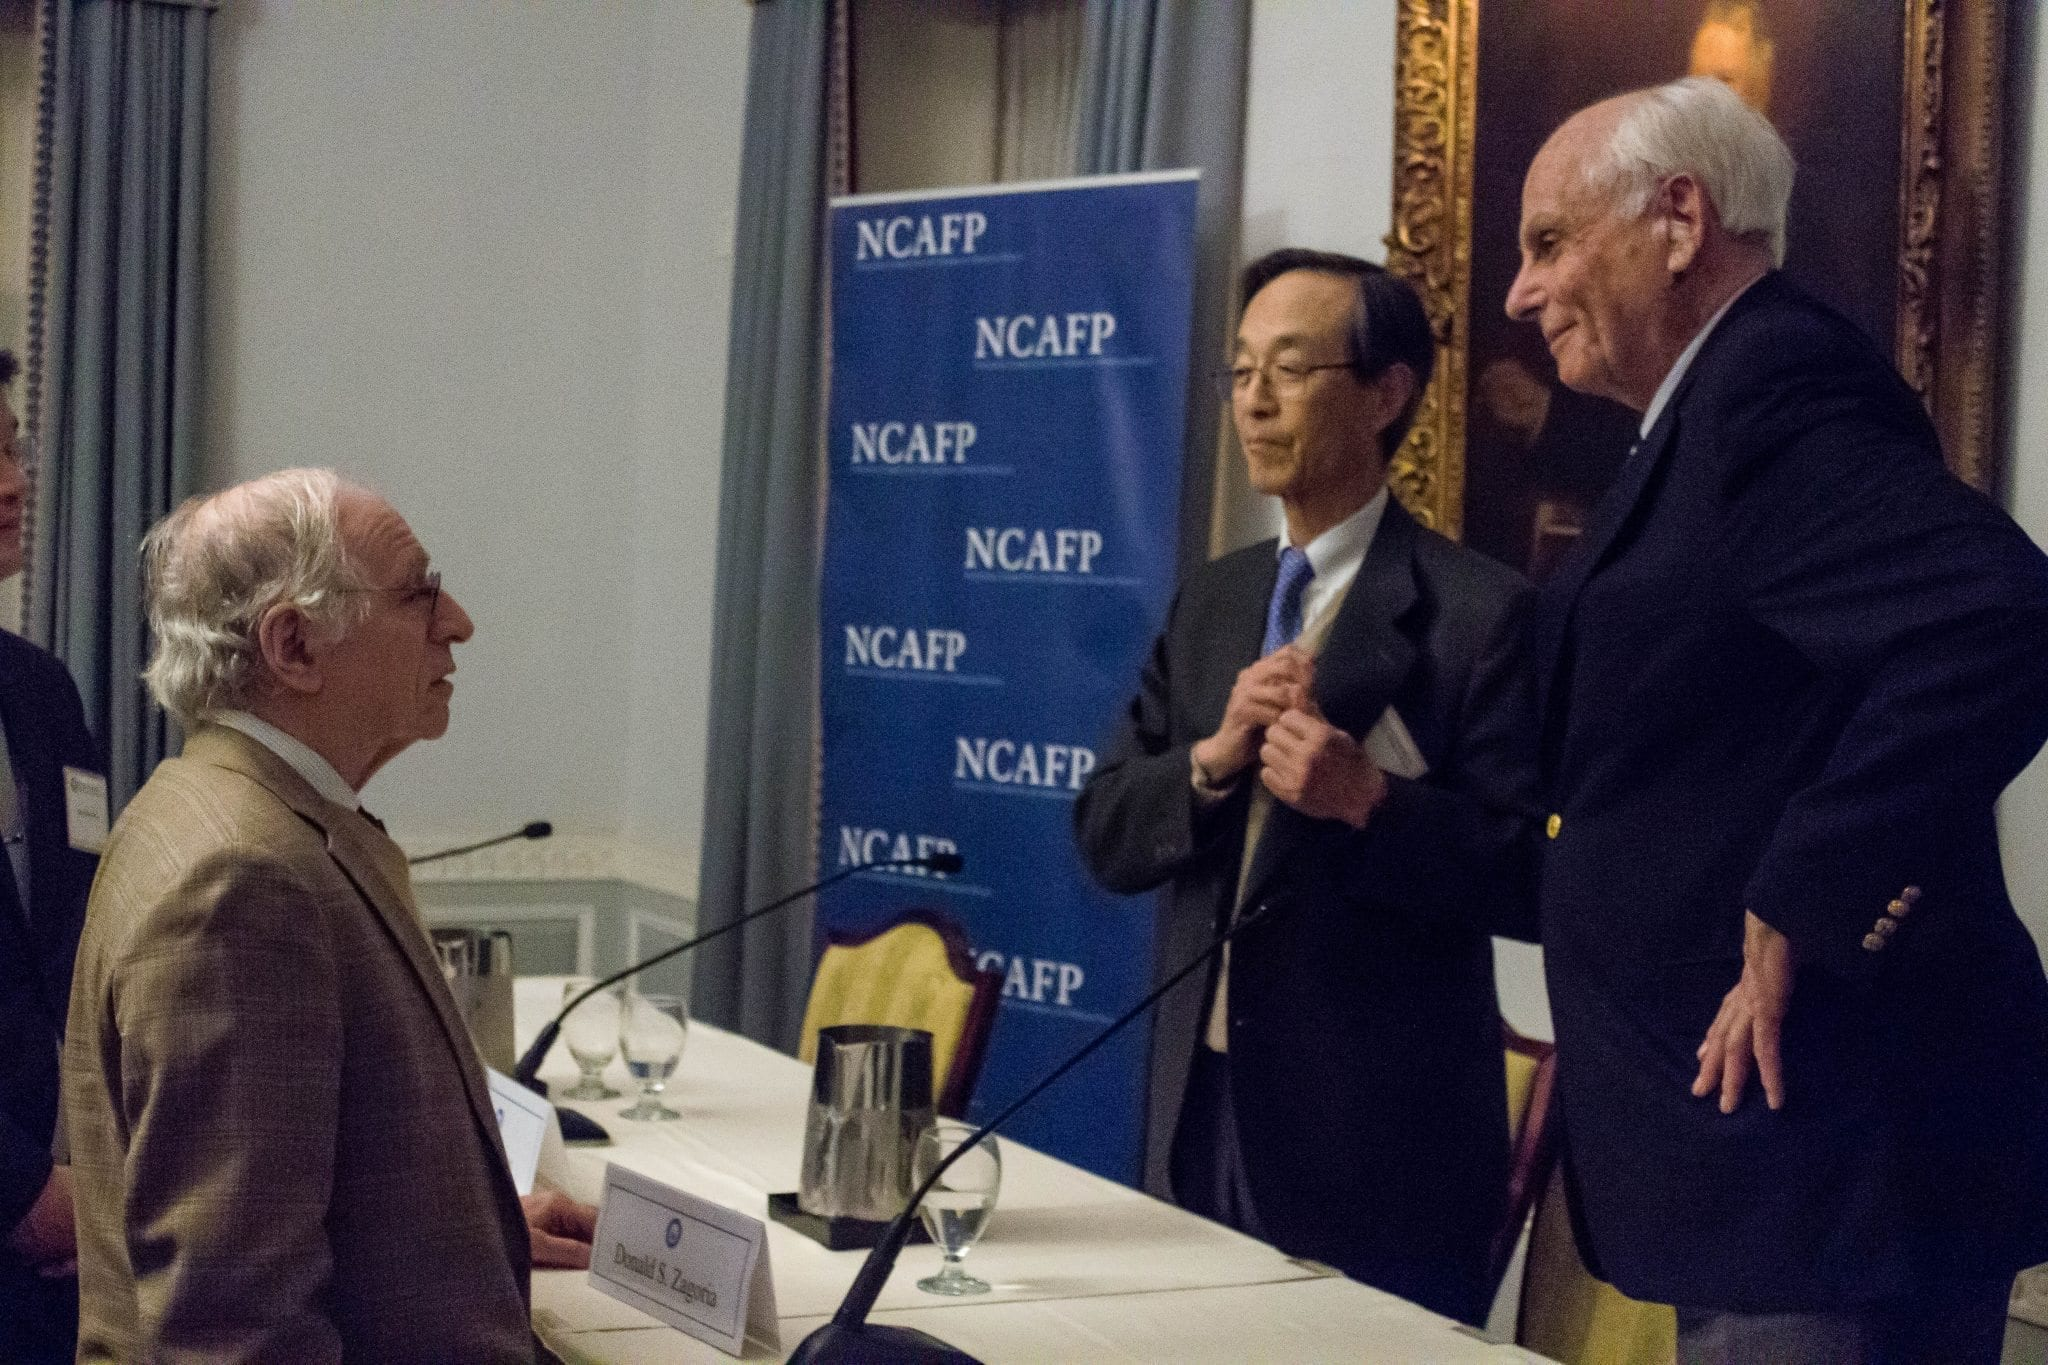 Professor Gerald Curtis engages with Minister Han and Dr. Zagoria after the program